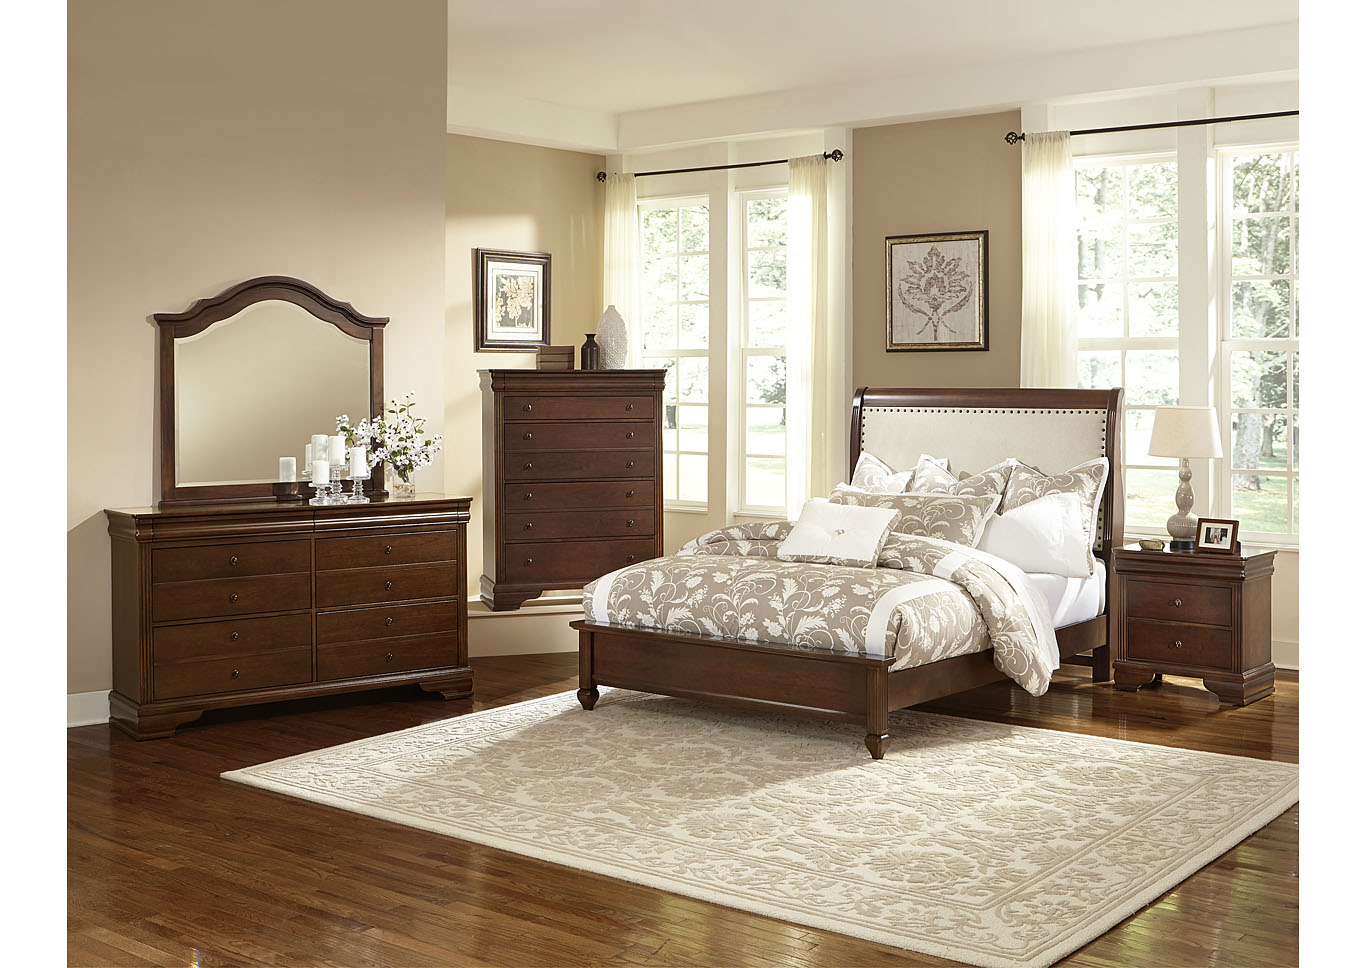 French Market French Cherry King Sleigh Bed w/ Dresser, Mirror, Drawer Chest and Nightstand,Vaughan-Bassett